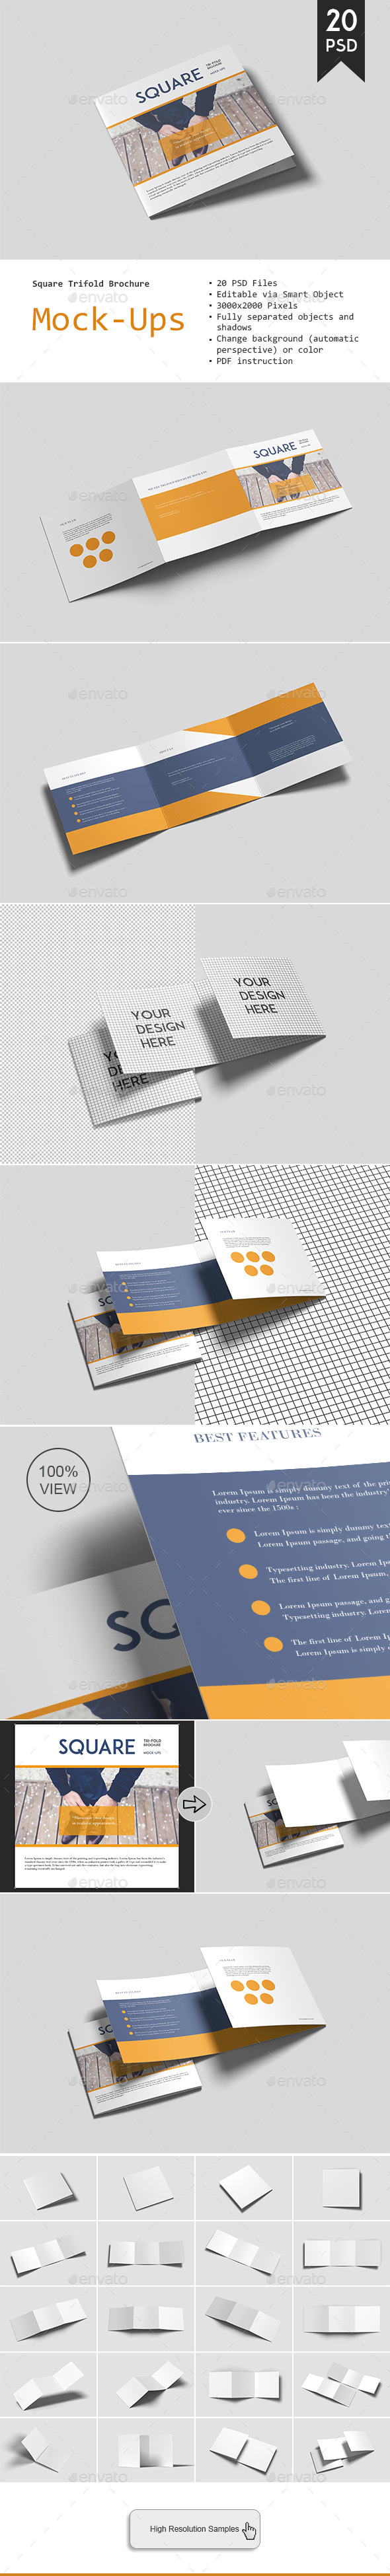 GraphicRiver Square Trifold Brochure Mockup 20964215